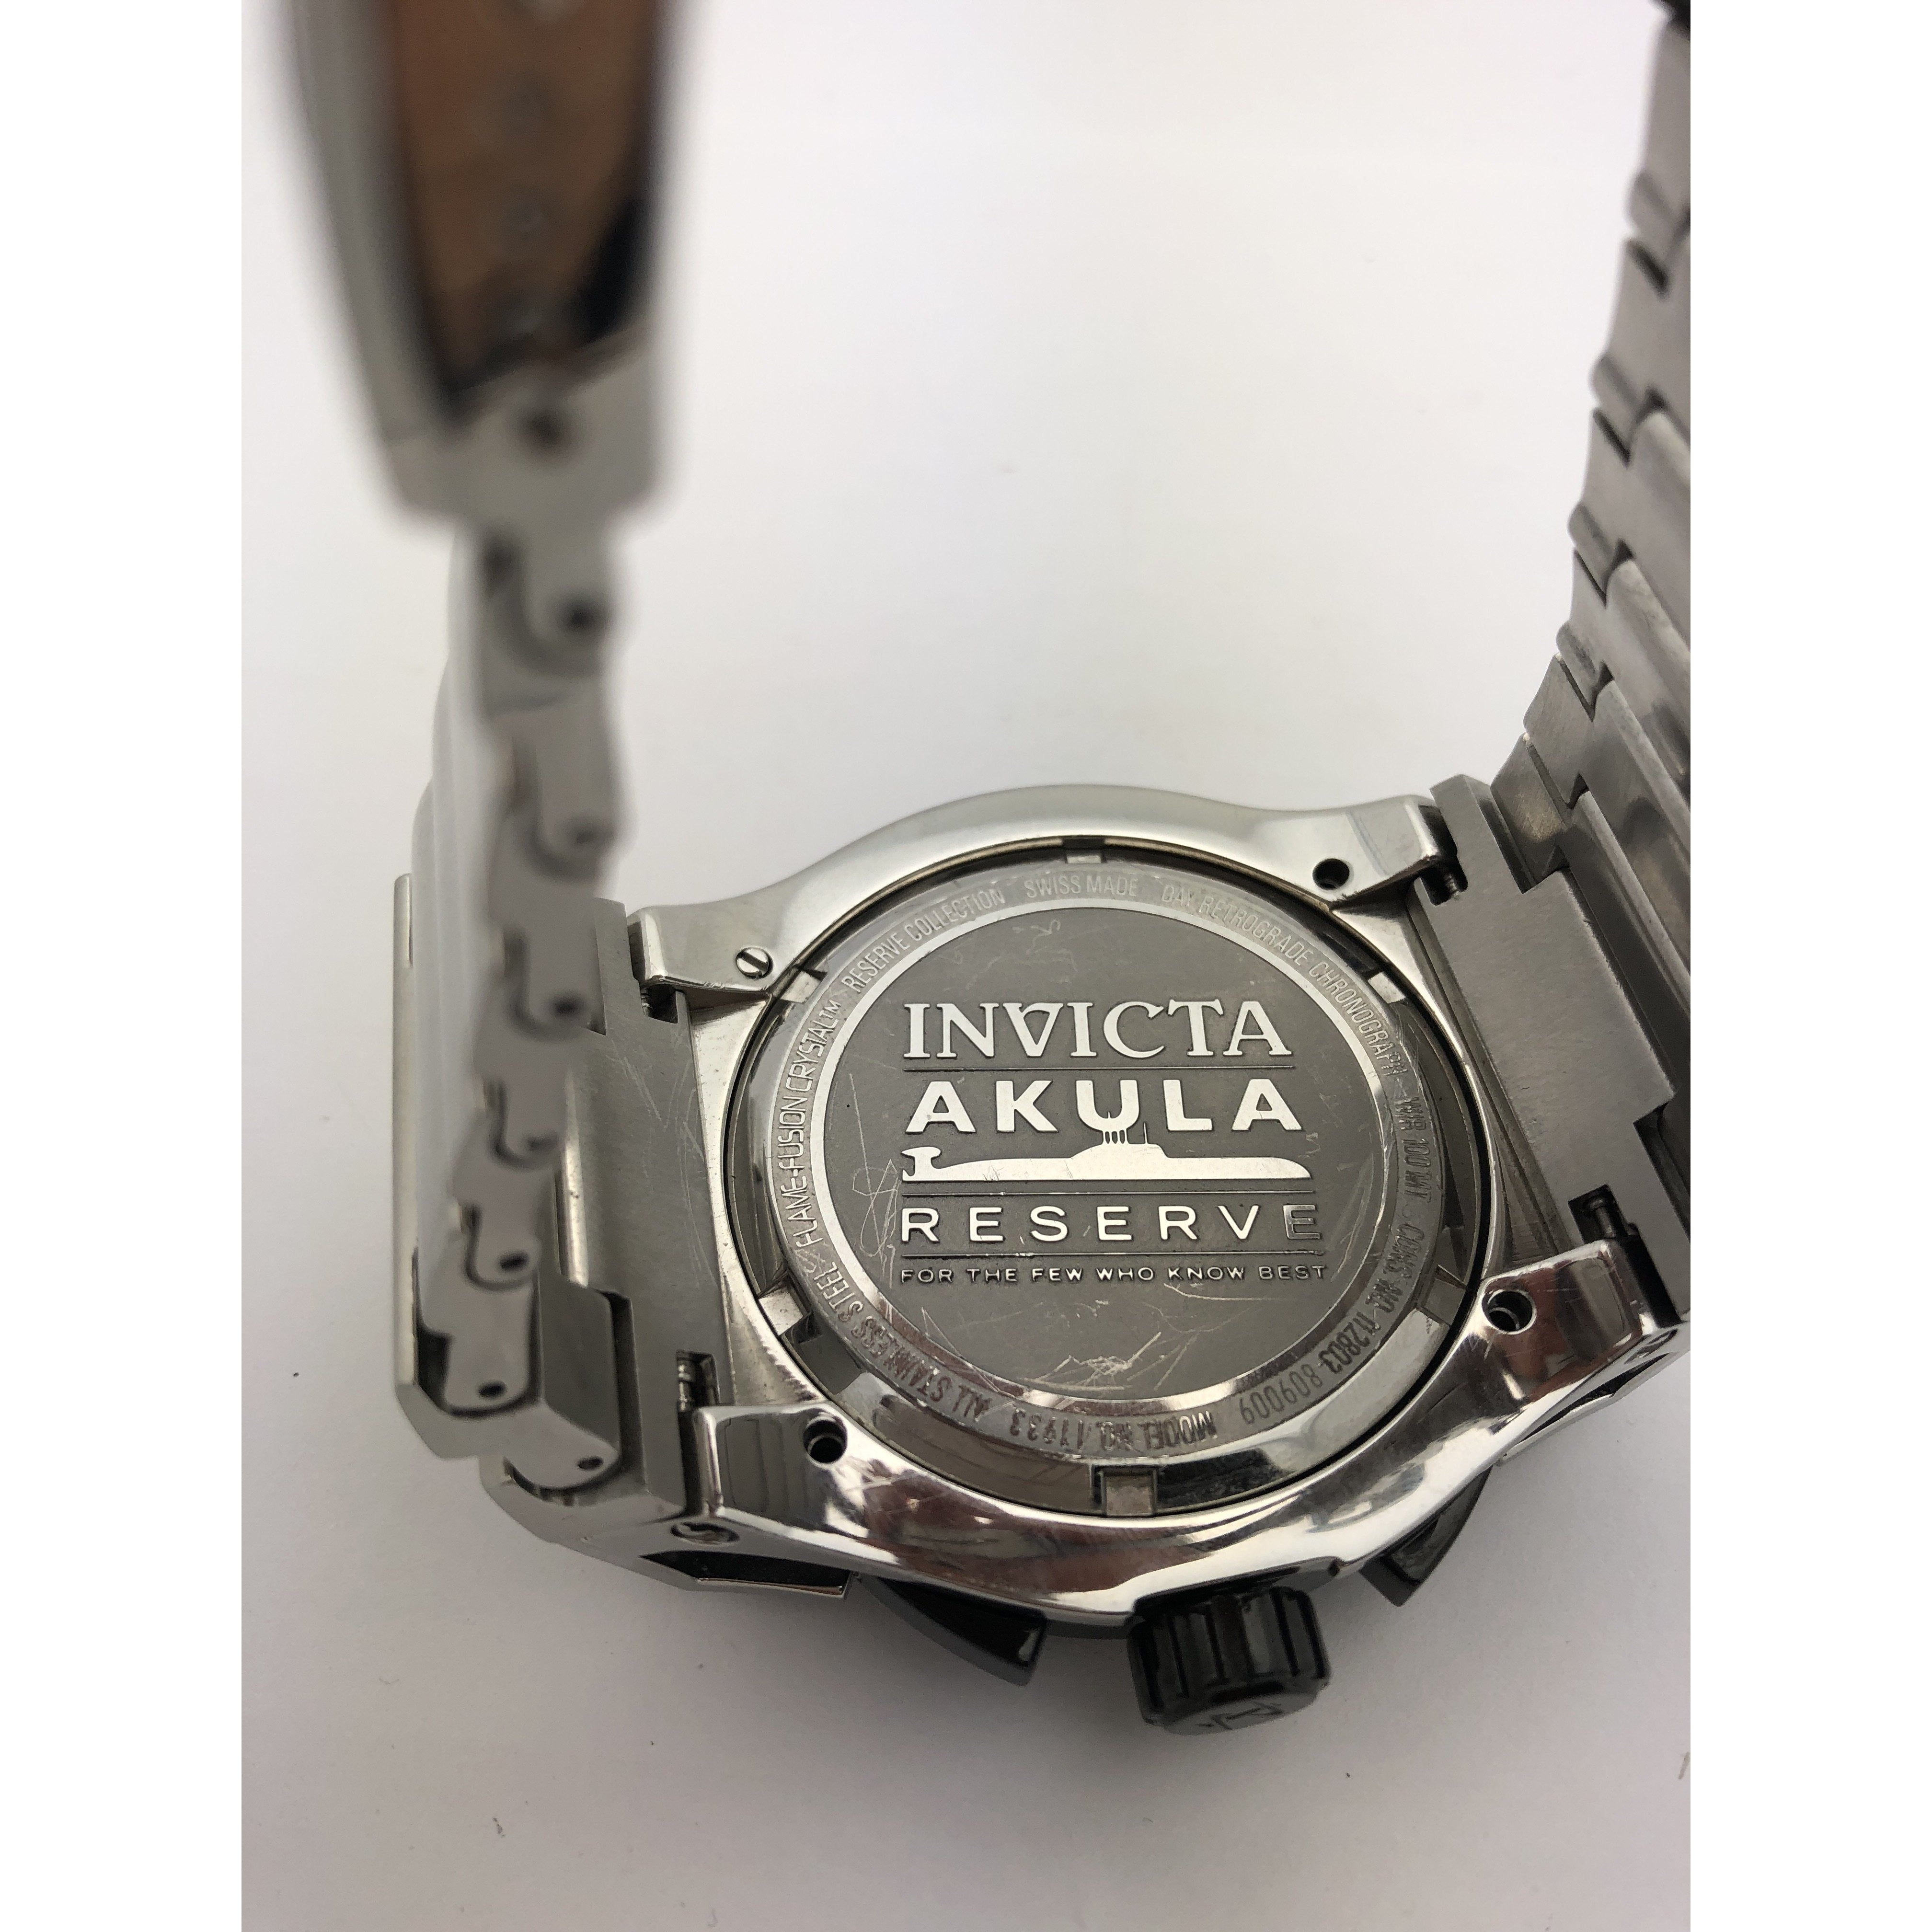 Invicta Men's Chronograph Silver Dial Silver Tone Stainless Steel Watch 11933